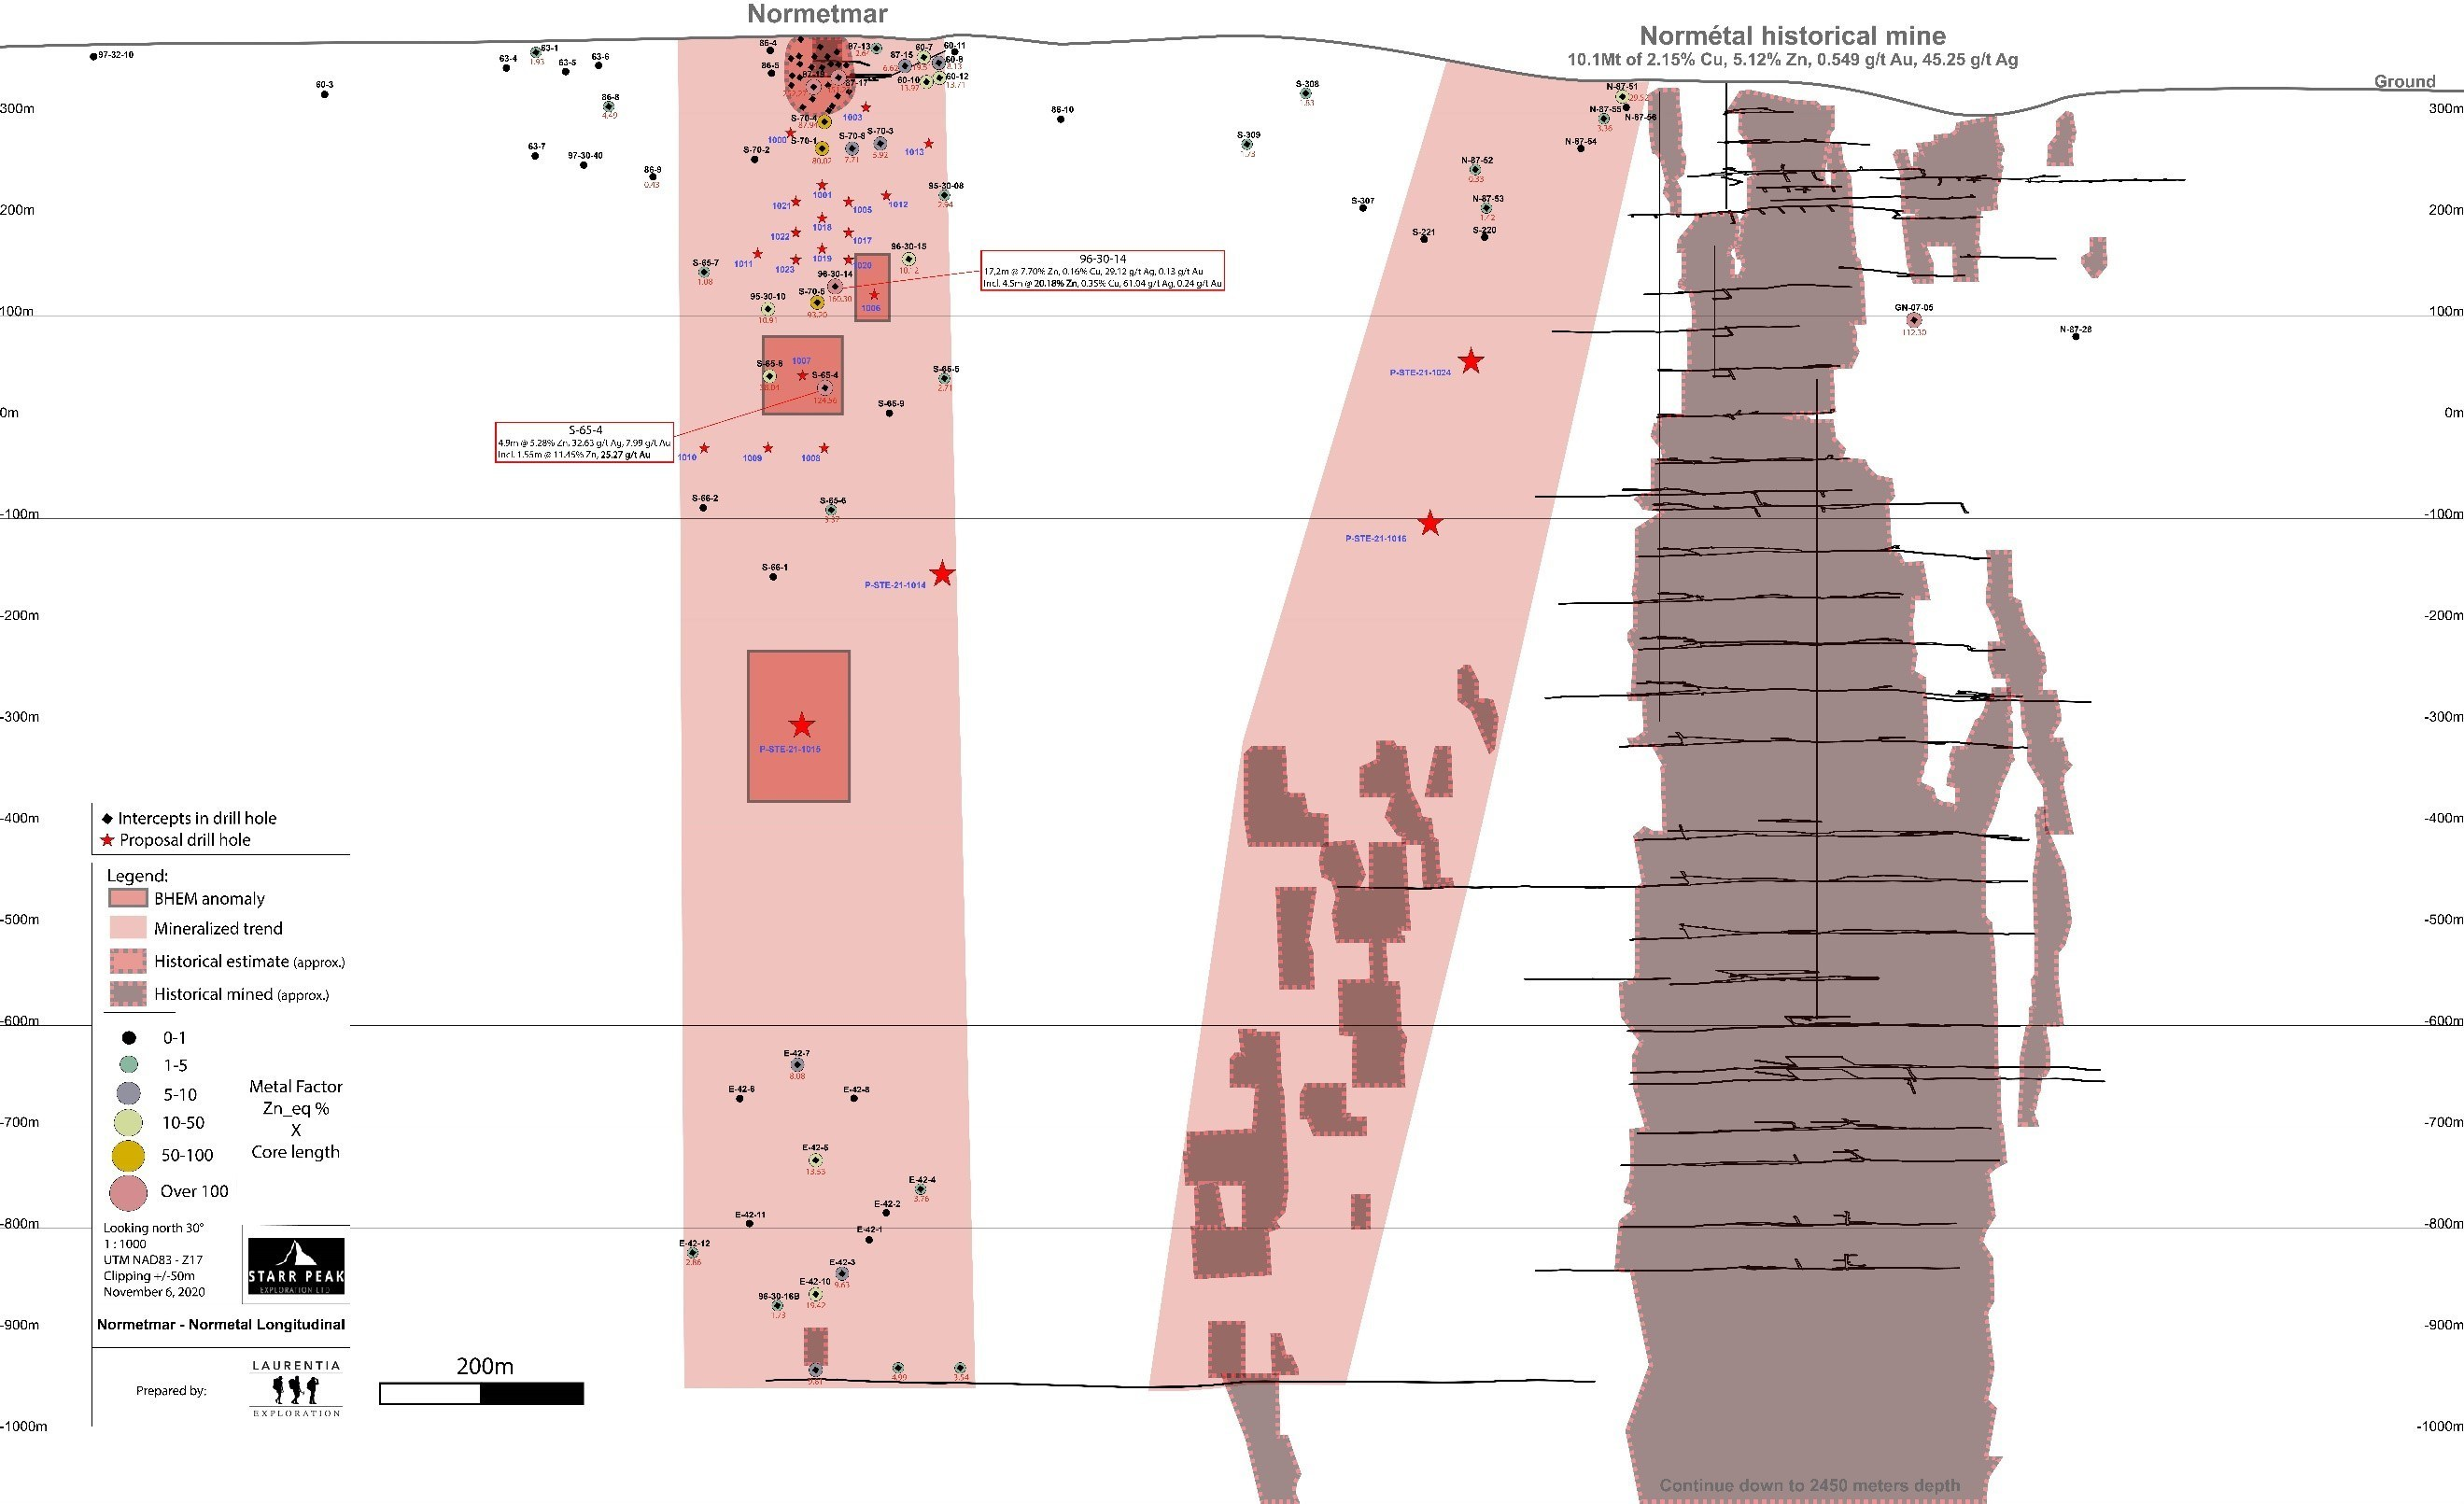 Figure 2: Longitudinal Section of the Normétal Past-Producing Mine and Normetmar Satellite Deposit. Drilling targets represented by a red star. Historical Drill Intercepts area provided in Zinc-Equivalent calculated using the formula in references. (CNW Group/Starr Peak Exploration Ltd.)